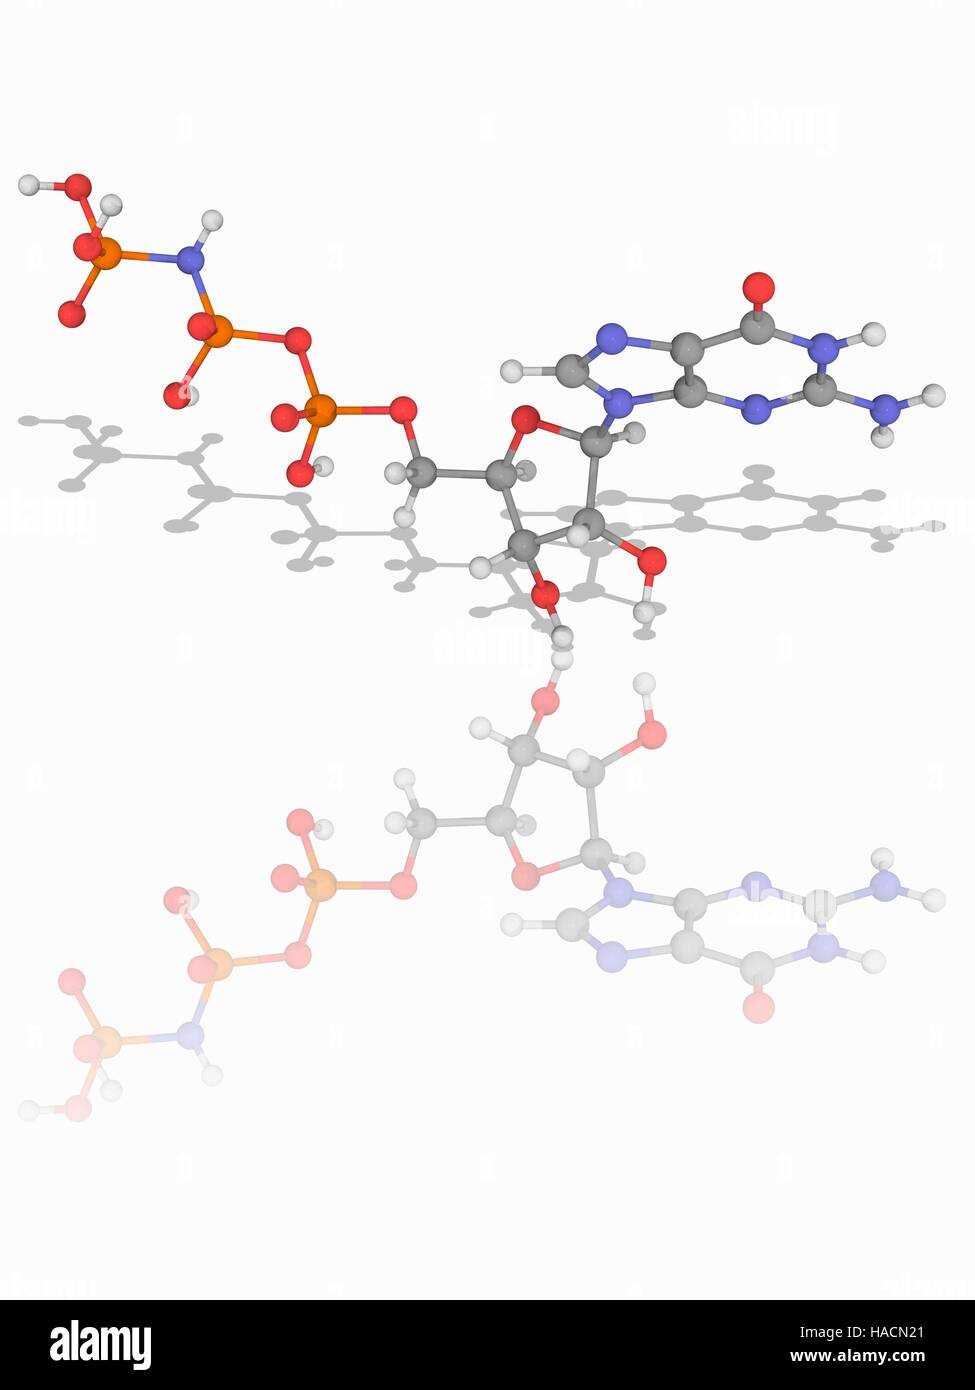 5'-guanylyl imidodiphosphate. Molecular model of the purine nucleotide 5'-guanylyl imidodiphosphate (C10.H17.N6.O13.P3). - Stock Image